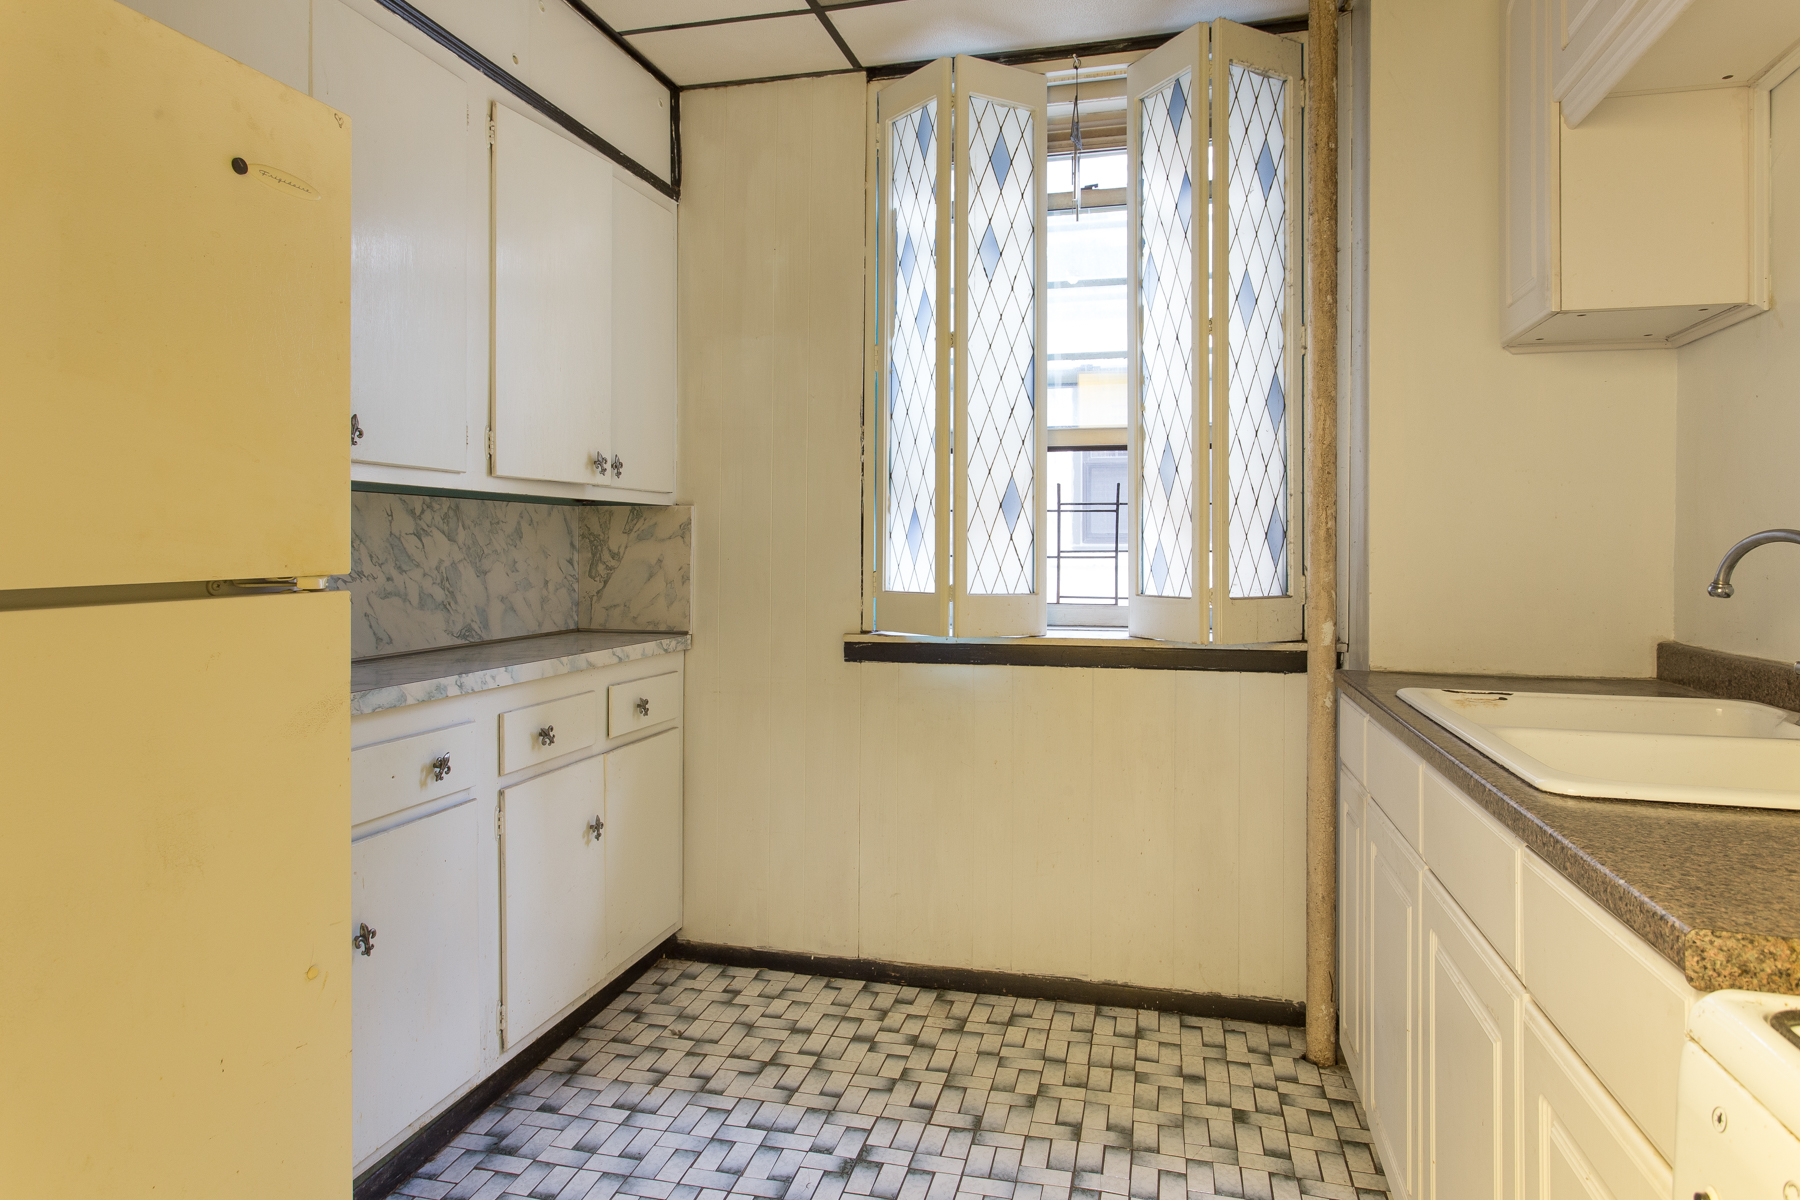 """Additional photo for property listing at """"ONE BEDROOM IN GREAT LOCATION"""" 4 Dartmouth Street, #510, Forest Hills Gardens, 森林山, 纽约州 11375 美国"""